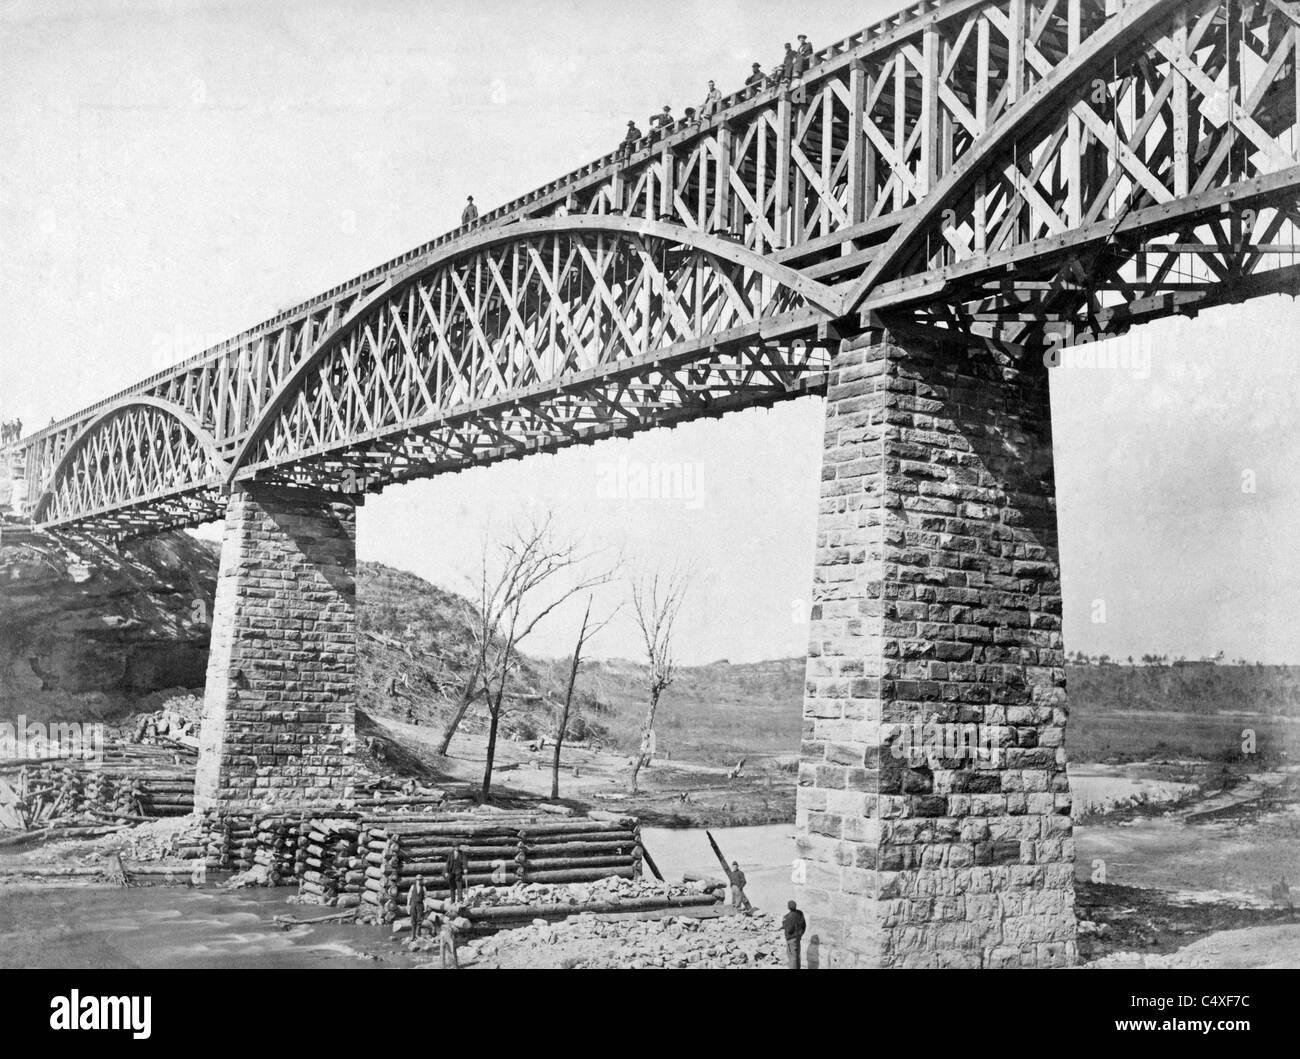 Truss Black And White Stock Photos Images Alamy Bridge Diagram Track Pony By Photograph Showing A Built For The Aquia Creek Fredericksburg Potomac Railroad